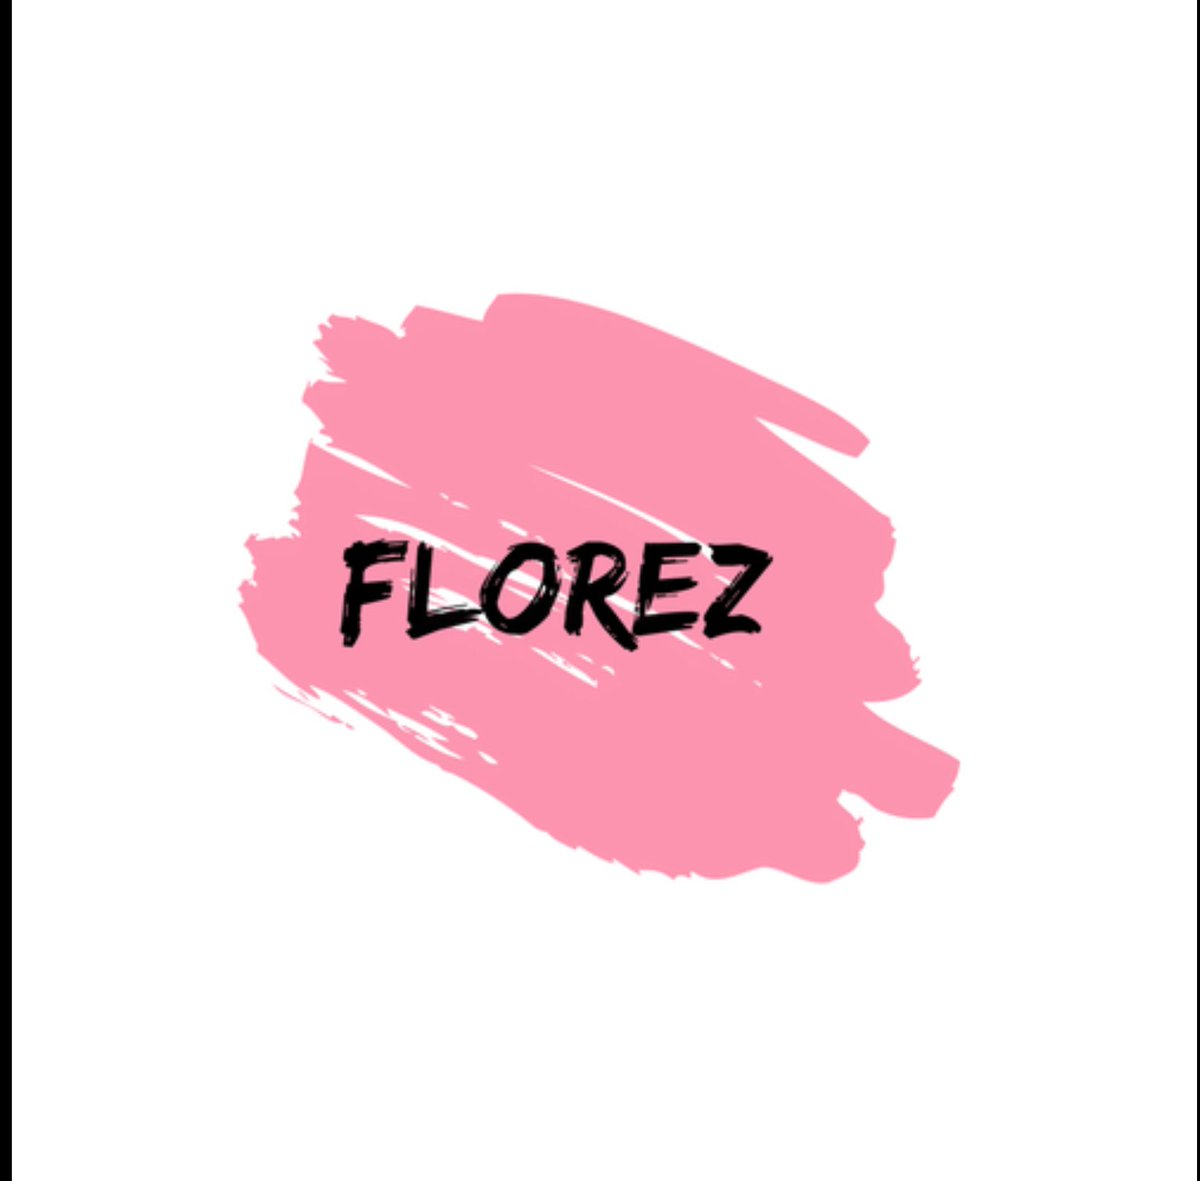 Hey Guys! This is the official twitter for Florez, a lifestyle blog founded by Assou Kone! Florez promotes female empowerment, entrepreneurship, and social development (focusing on disenfranchised communities). We are very excited to be on Twitter and stay on the lookout.